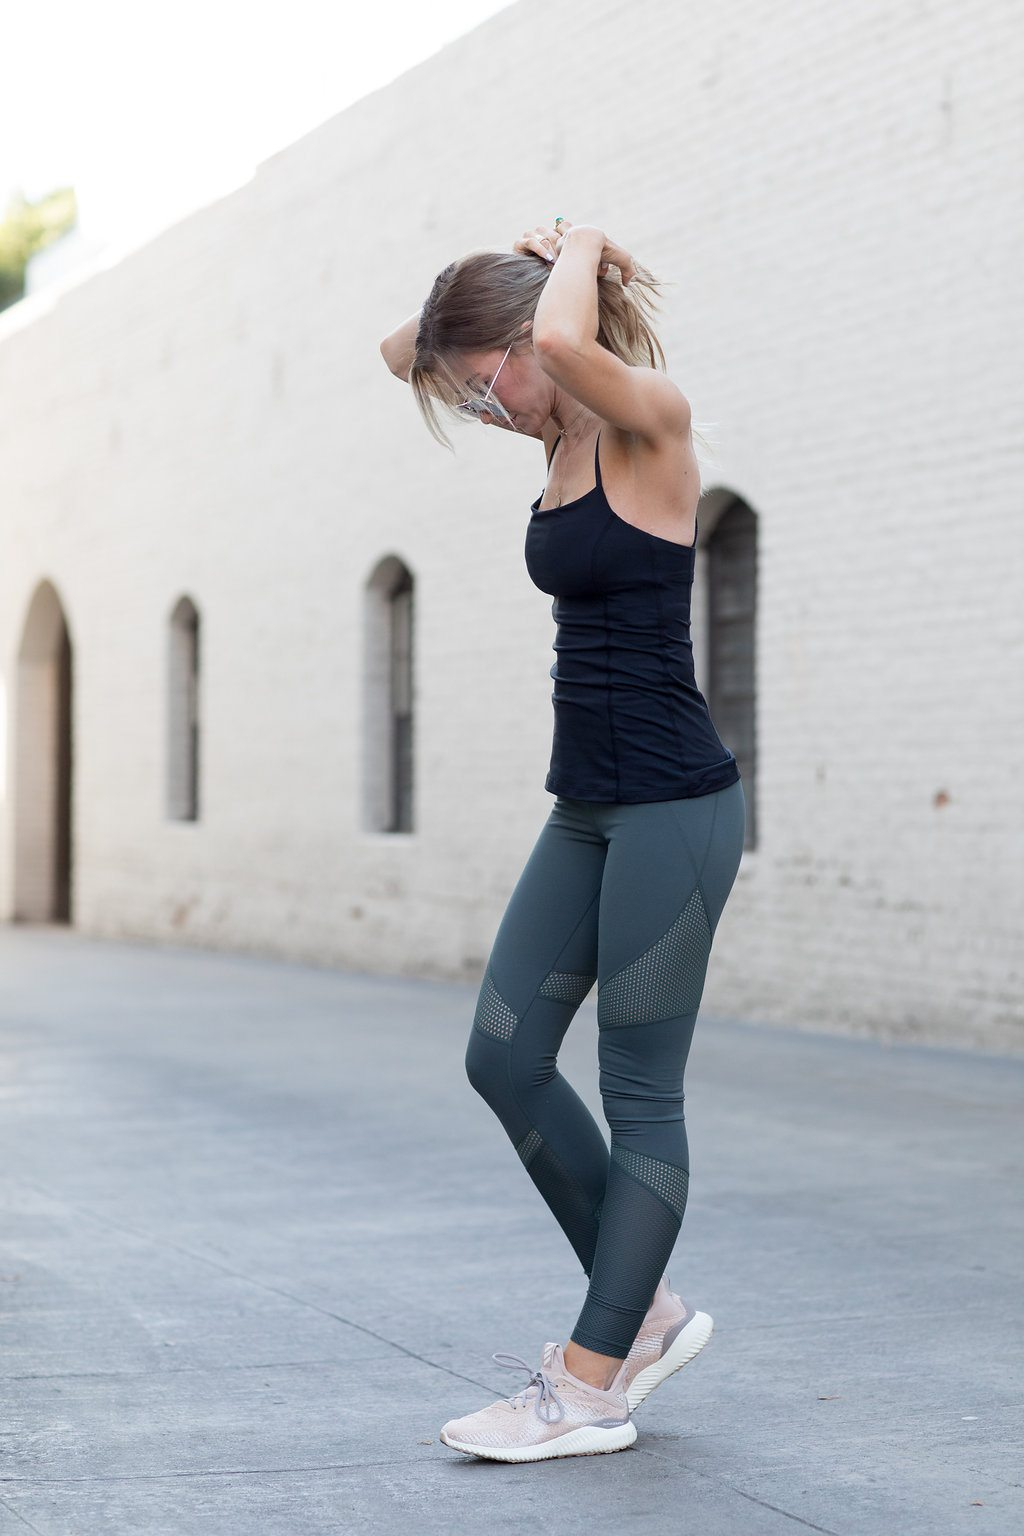 Olive green amazing leggings for running